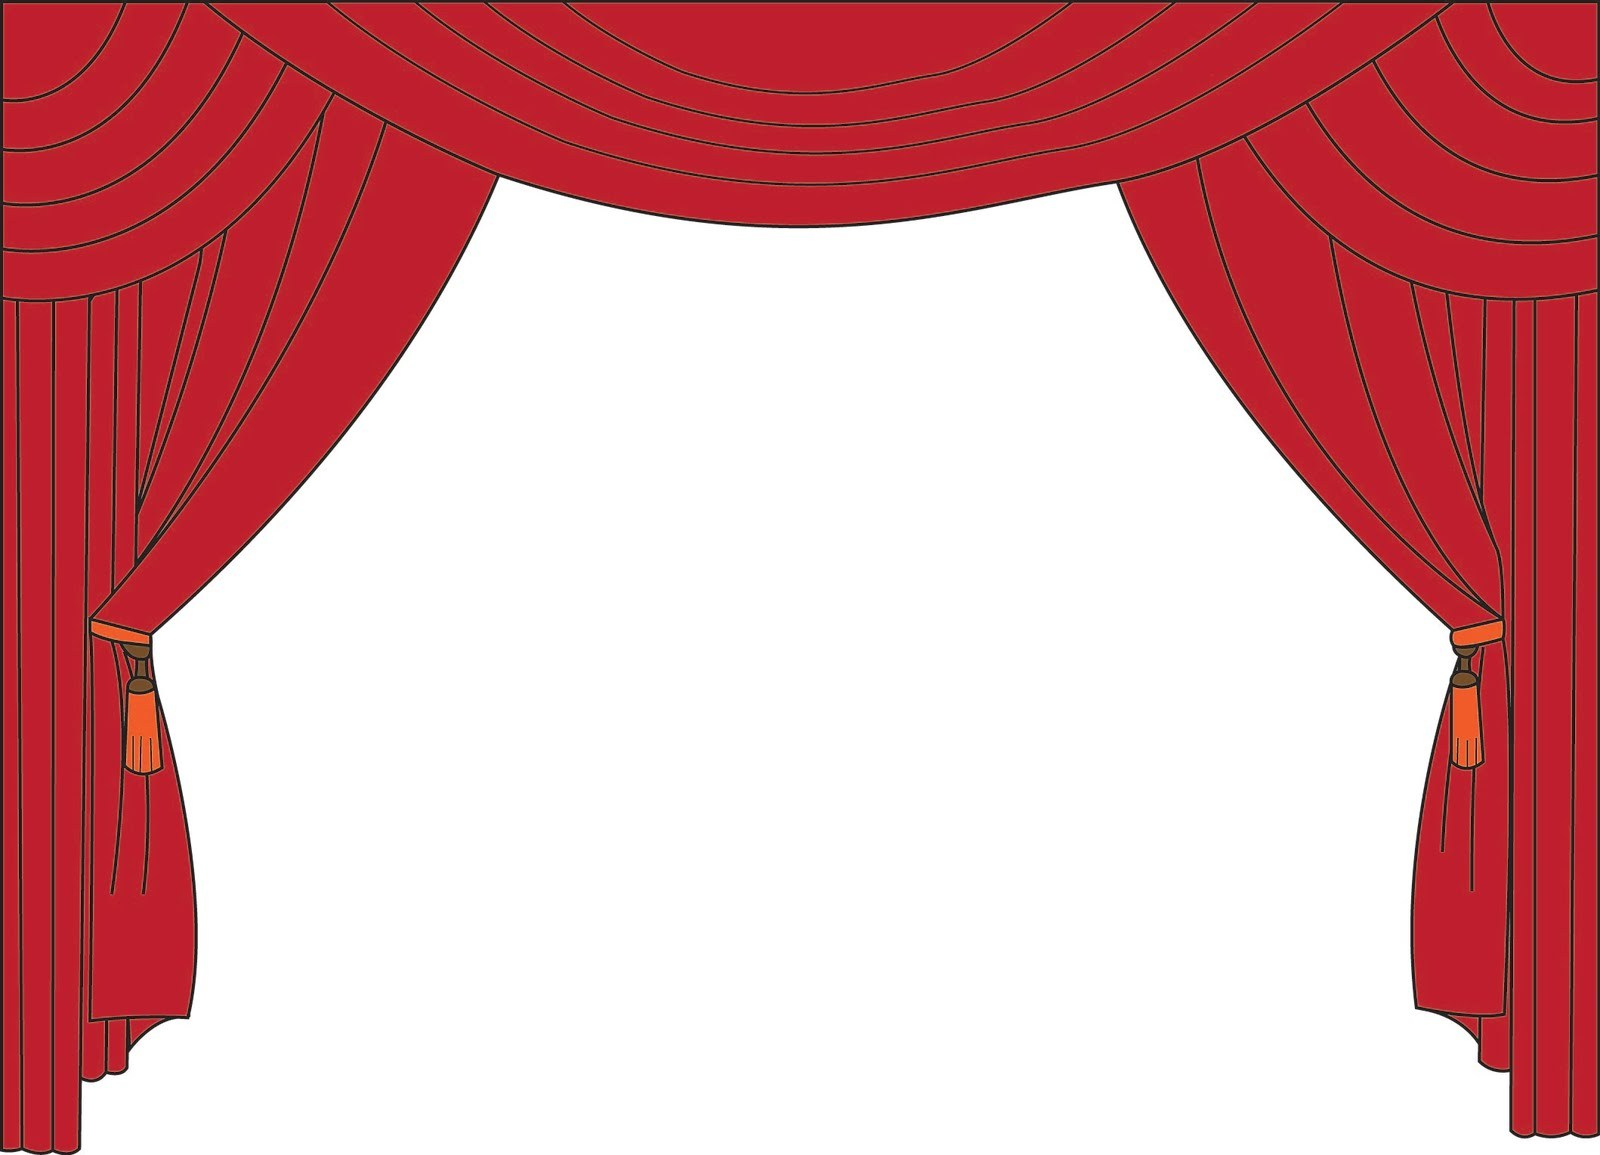 Closed stage curtains clipart black and white svg free stock Stage curtains clipart black and white 1 » Clipart Portal svg free stock